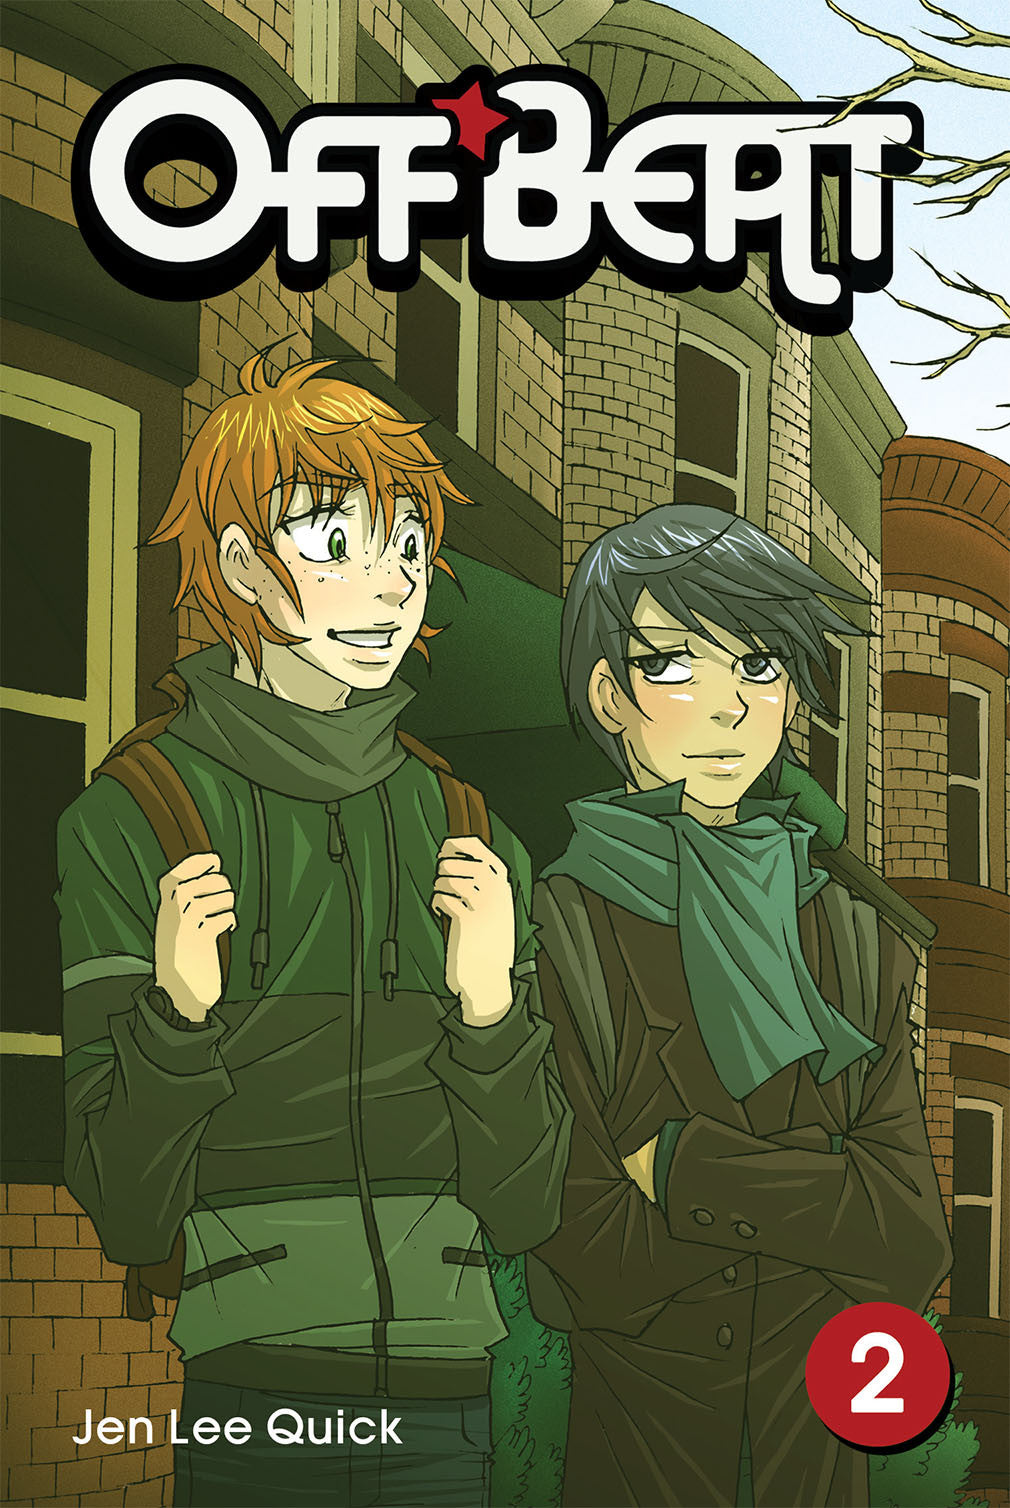 Off*Beat - Volume 2 from Off*Beat - Webcomic Merchandise